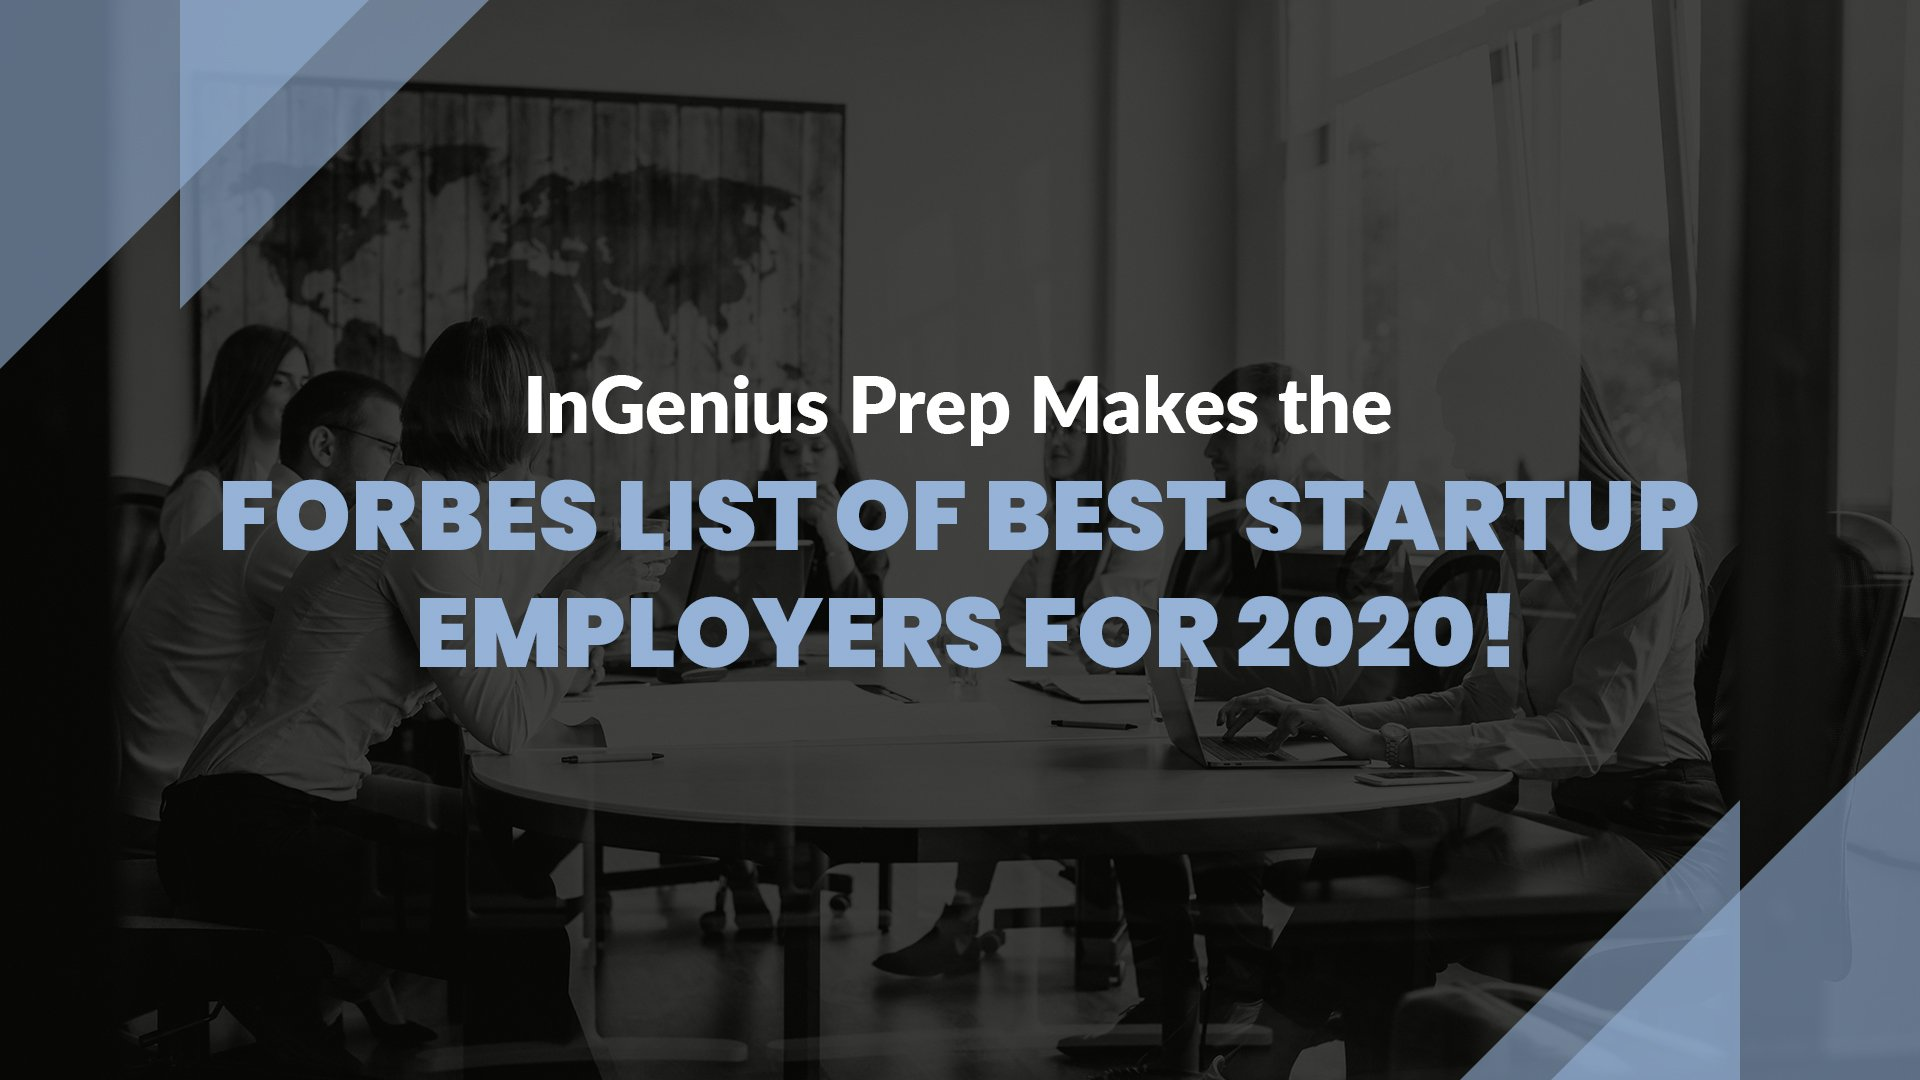 InGenius Prep Makes the Forbes List of Best Startup Employers for 2020!